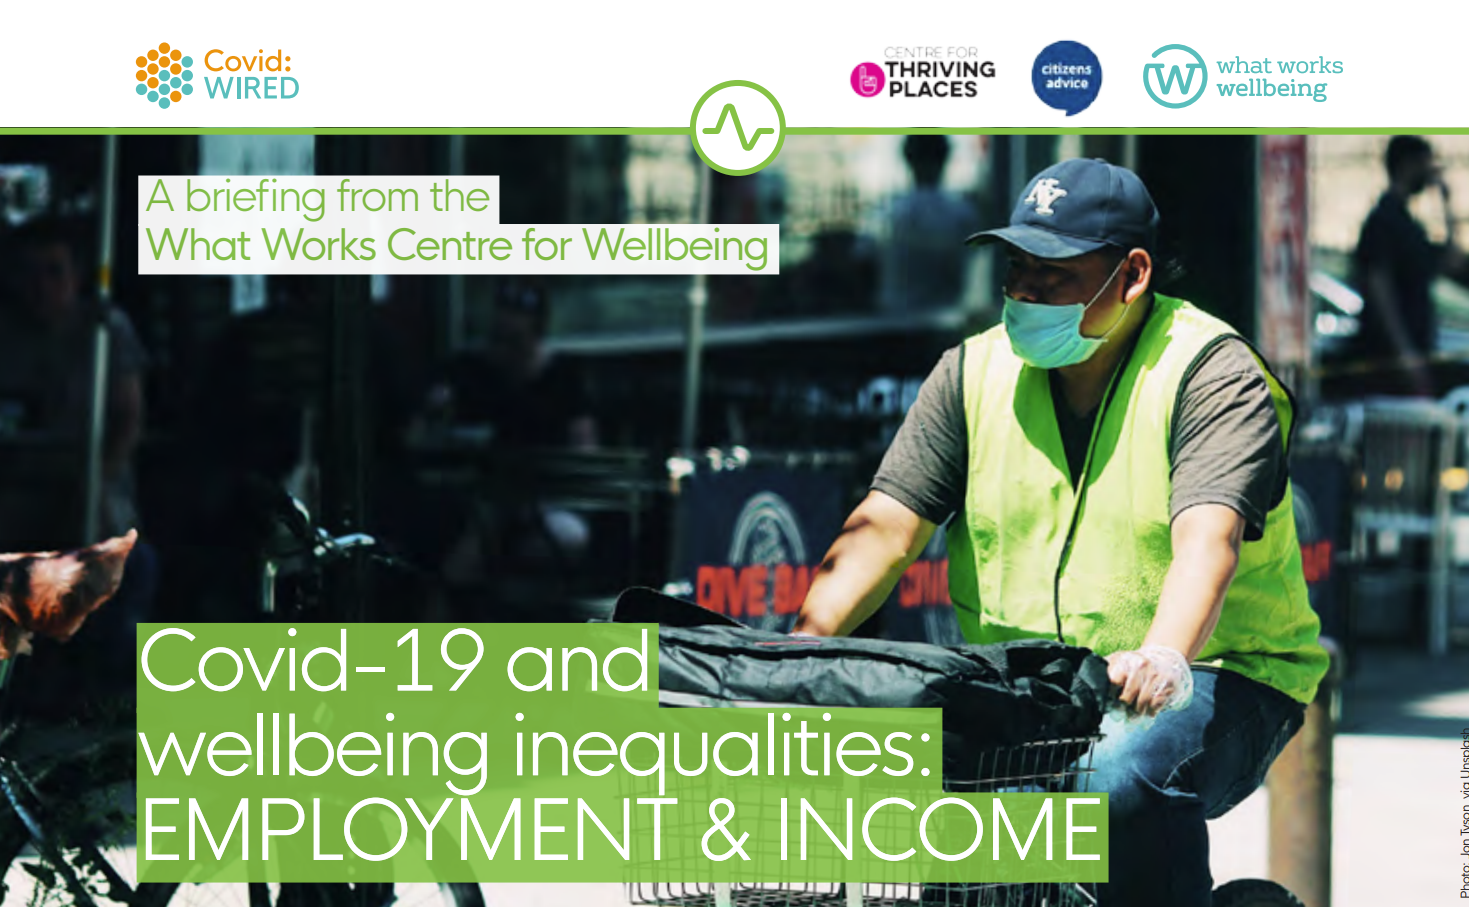 Covid-19 and wellbeing inequalities: Employment and income